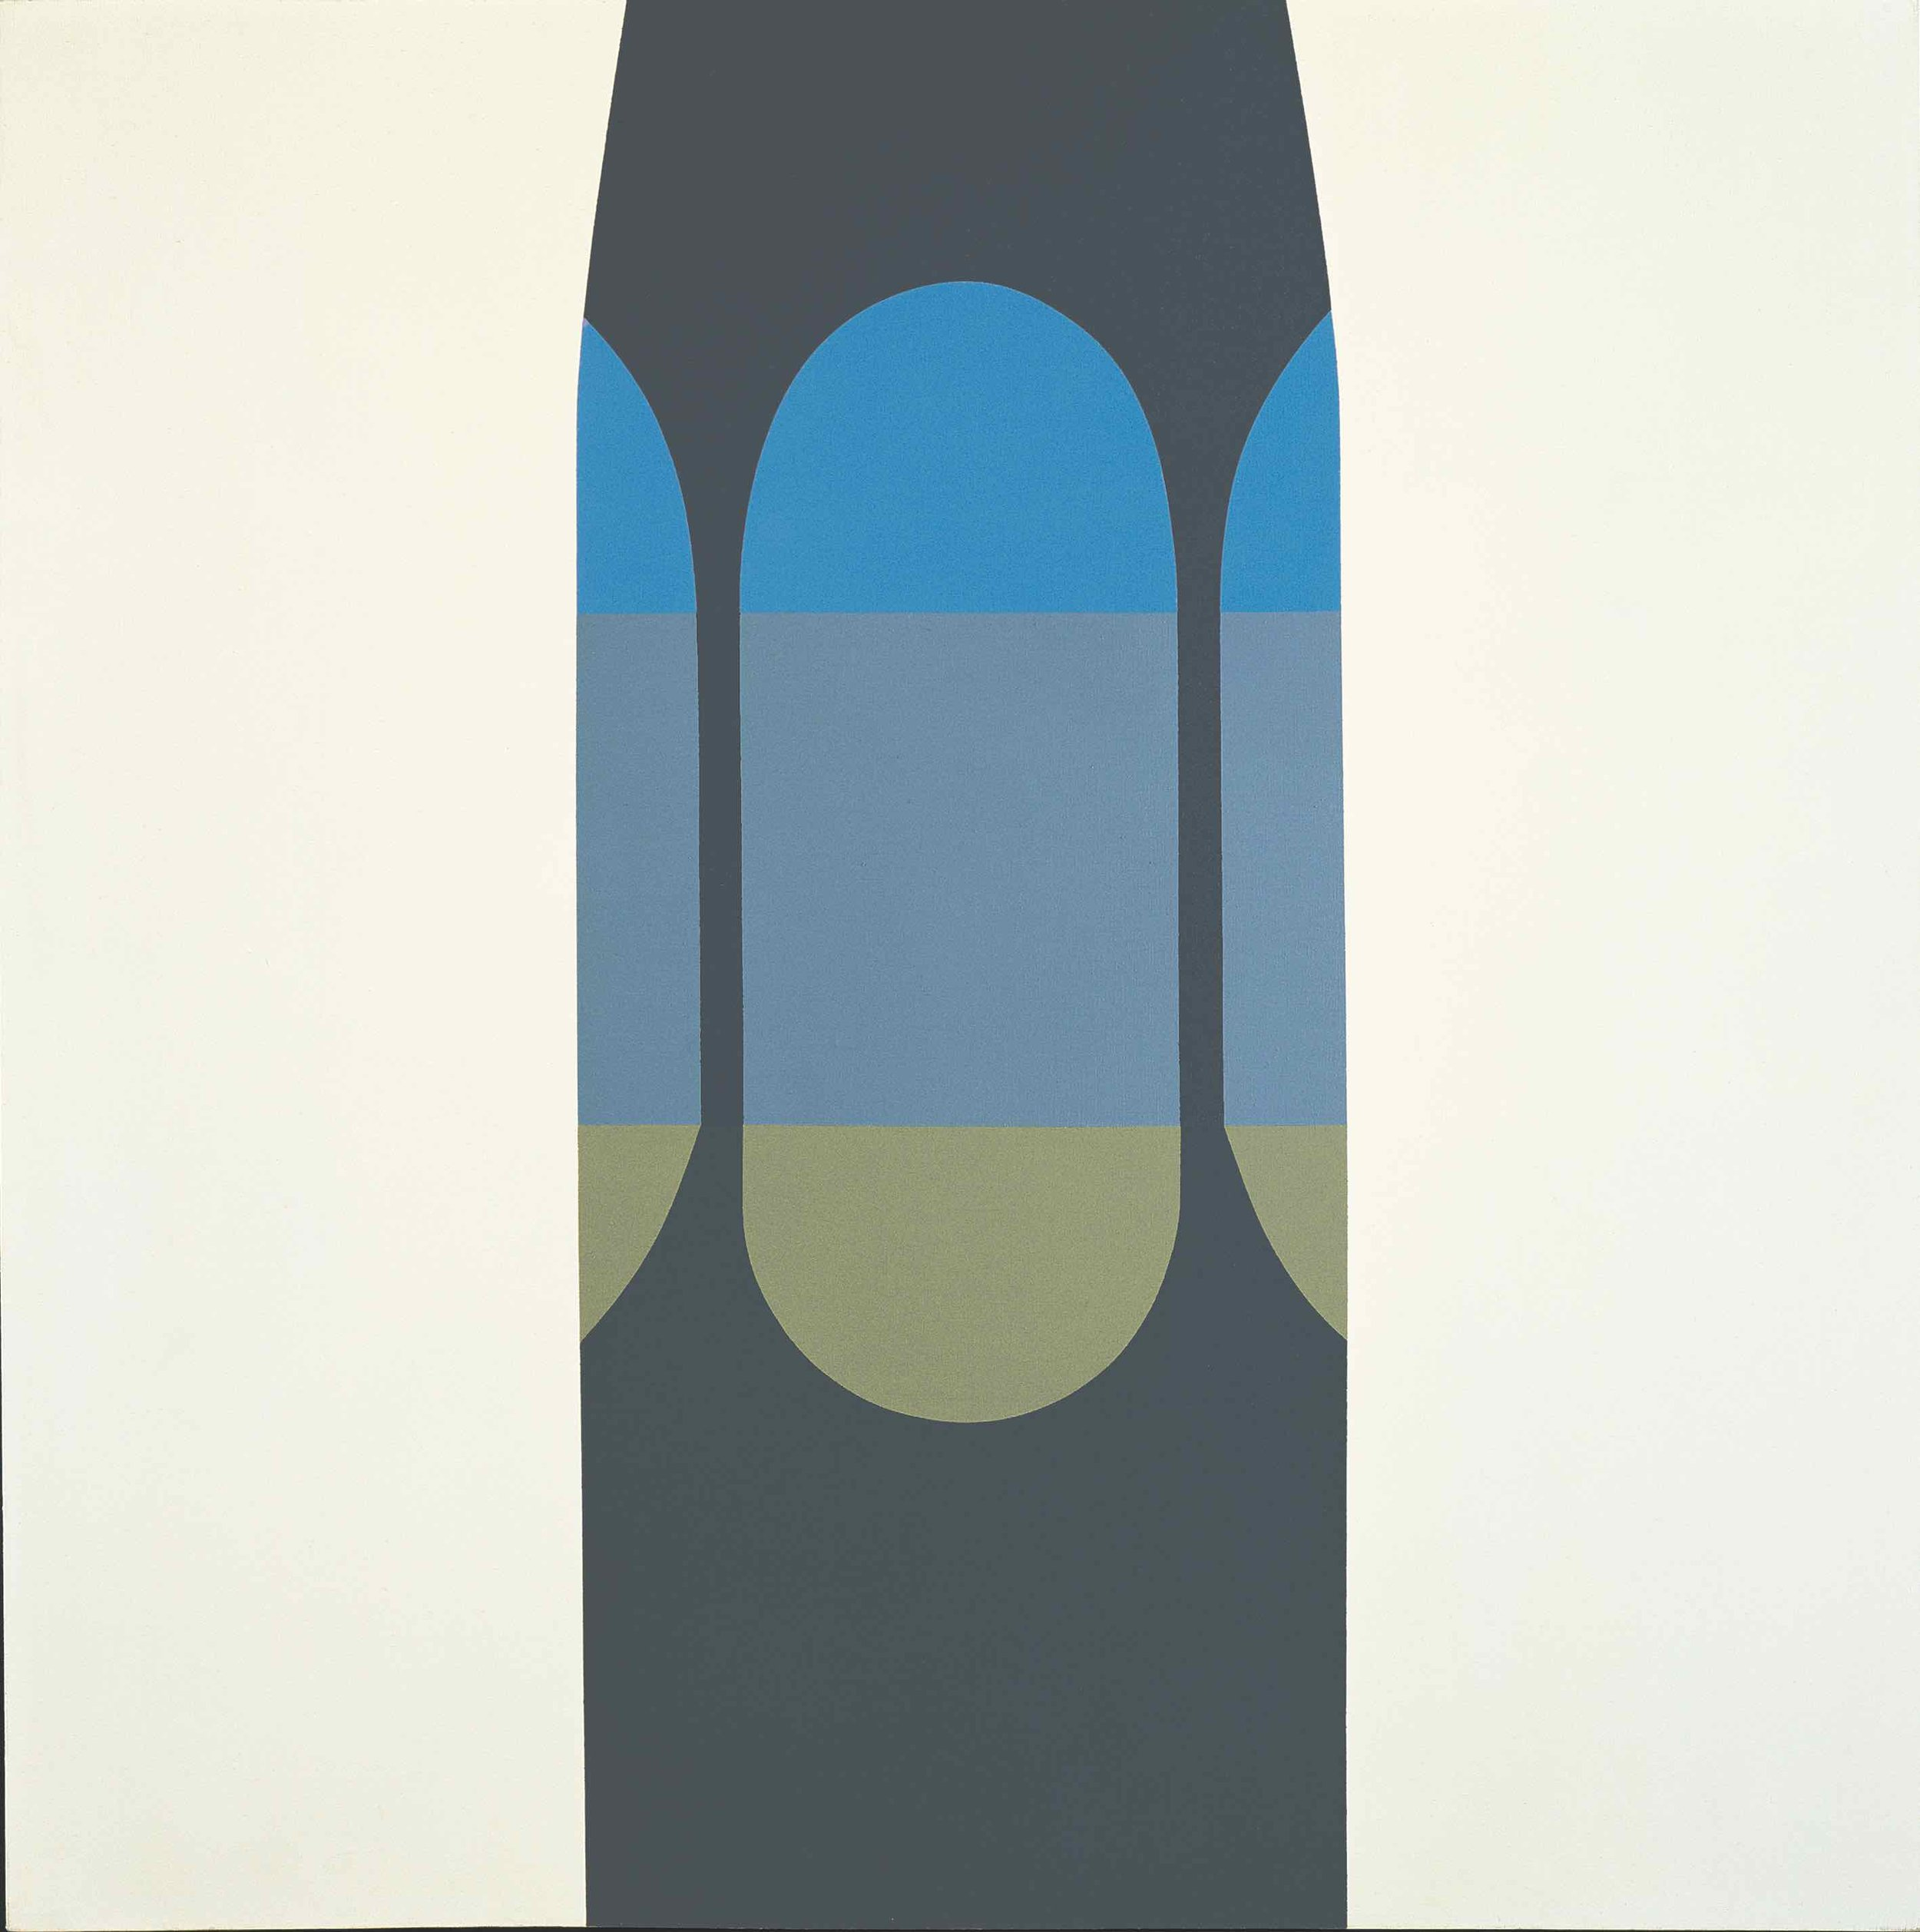 August 31, 1964 (Moonlight) , 1964  acrylic on canvas 60 x 60 inches; 152.4 x 152.4 centimeters